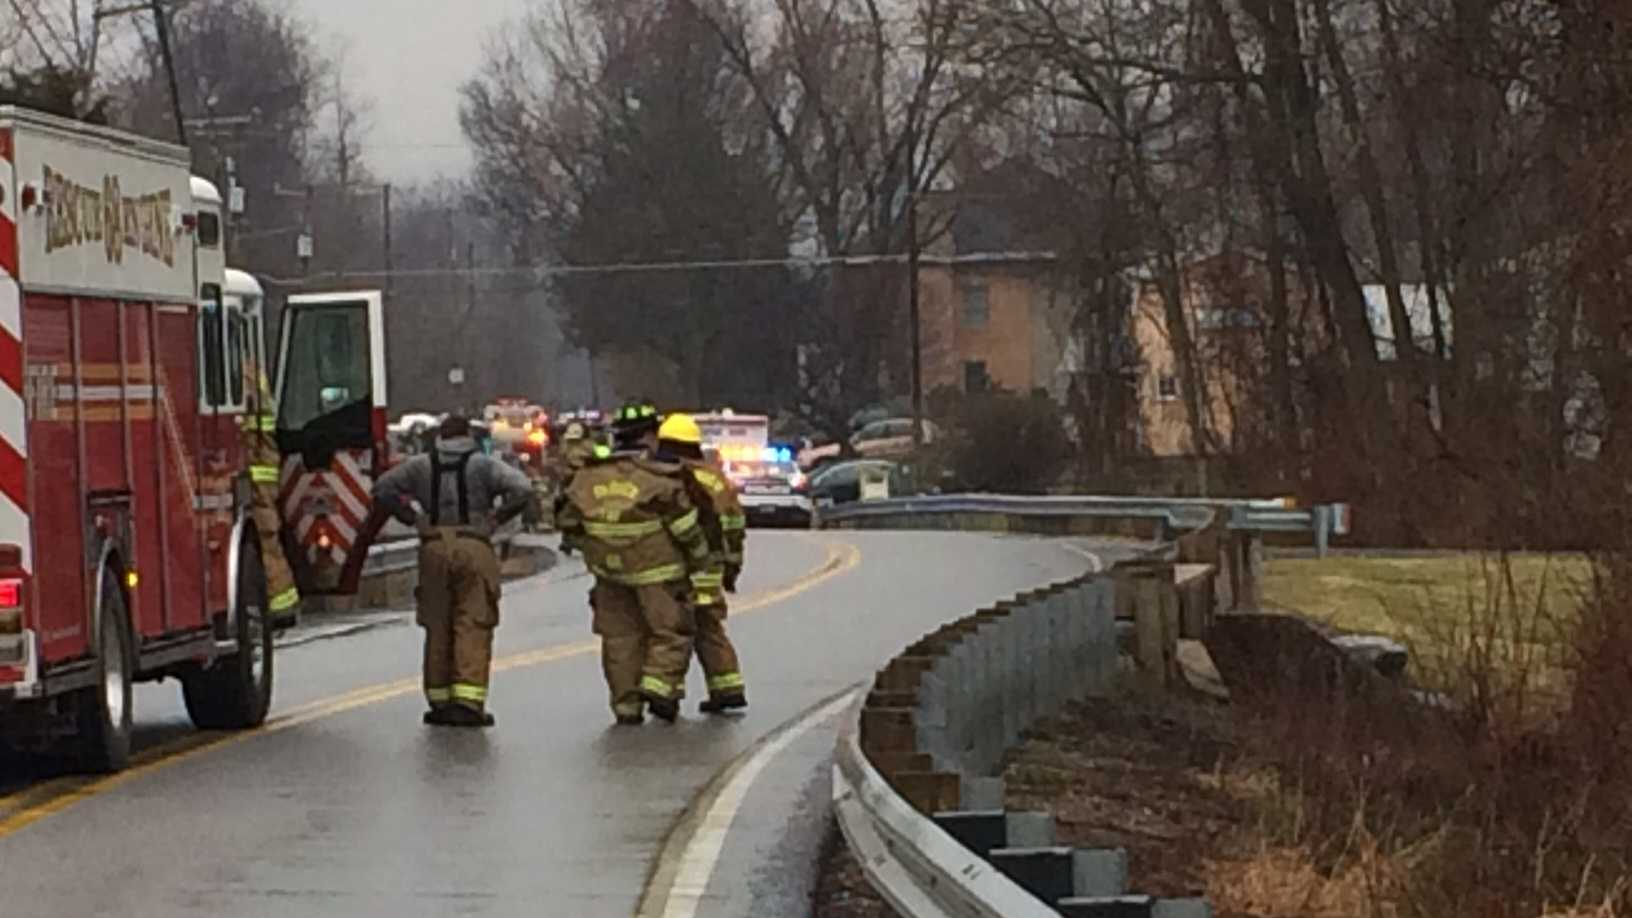 Crews fought a fire in Fairview Township, York County early Wednesday morning.